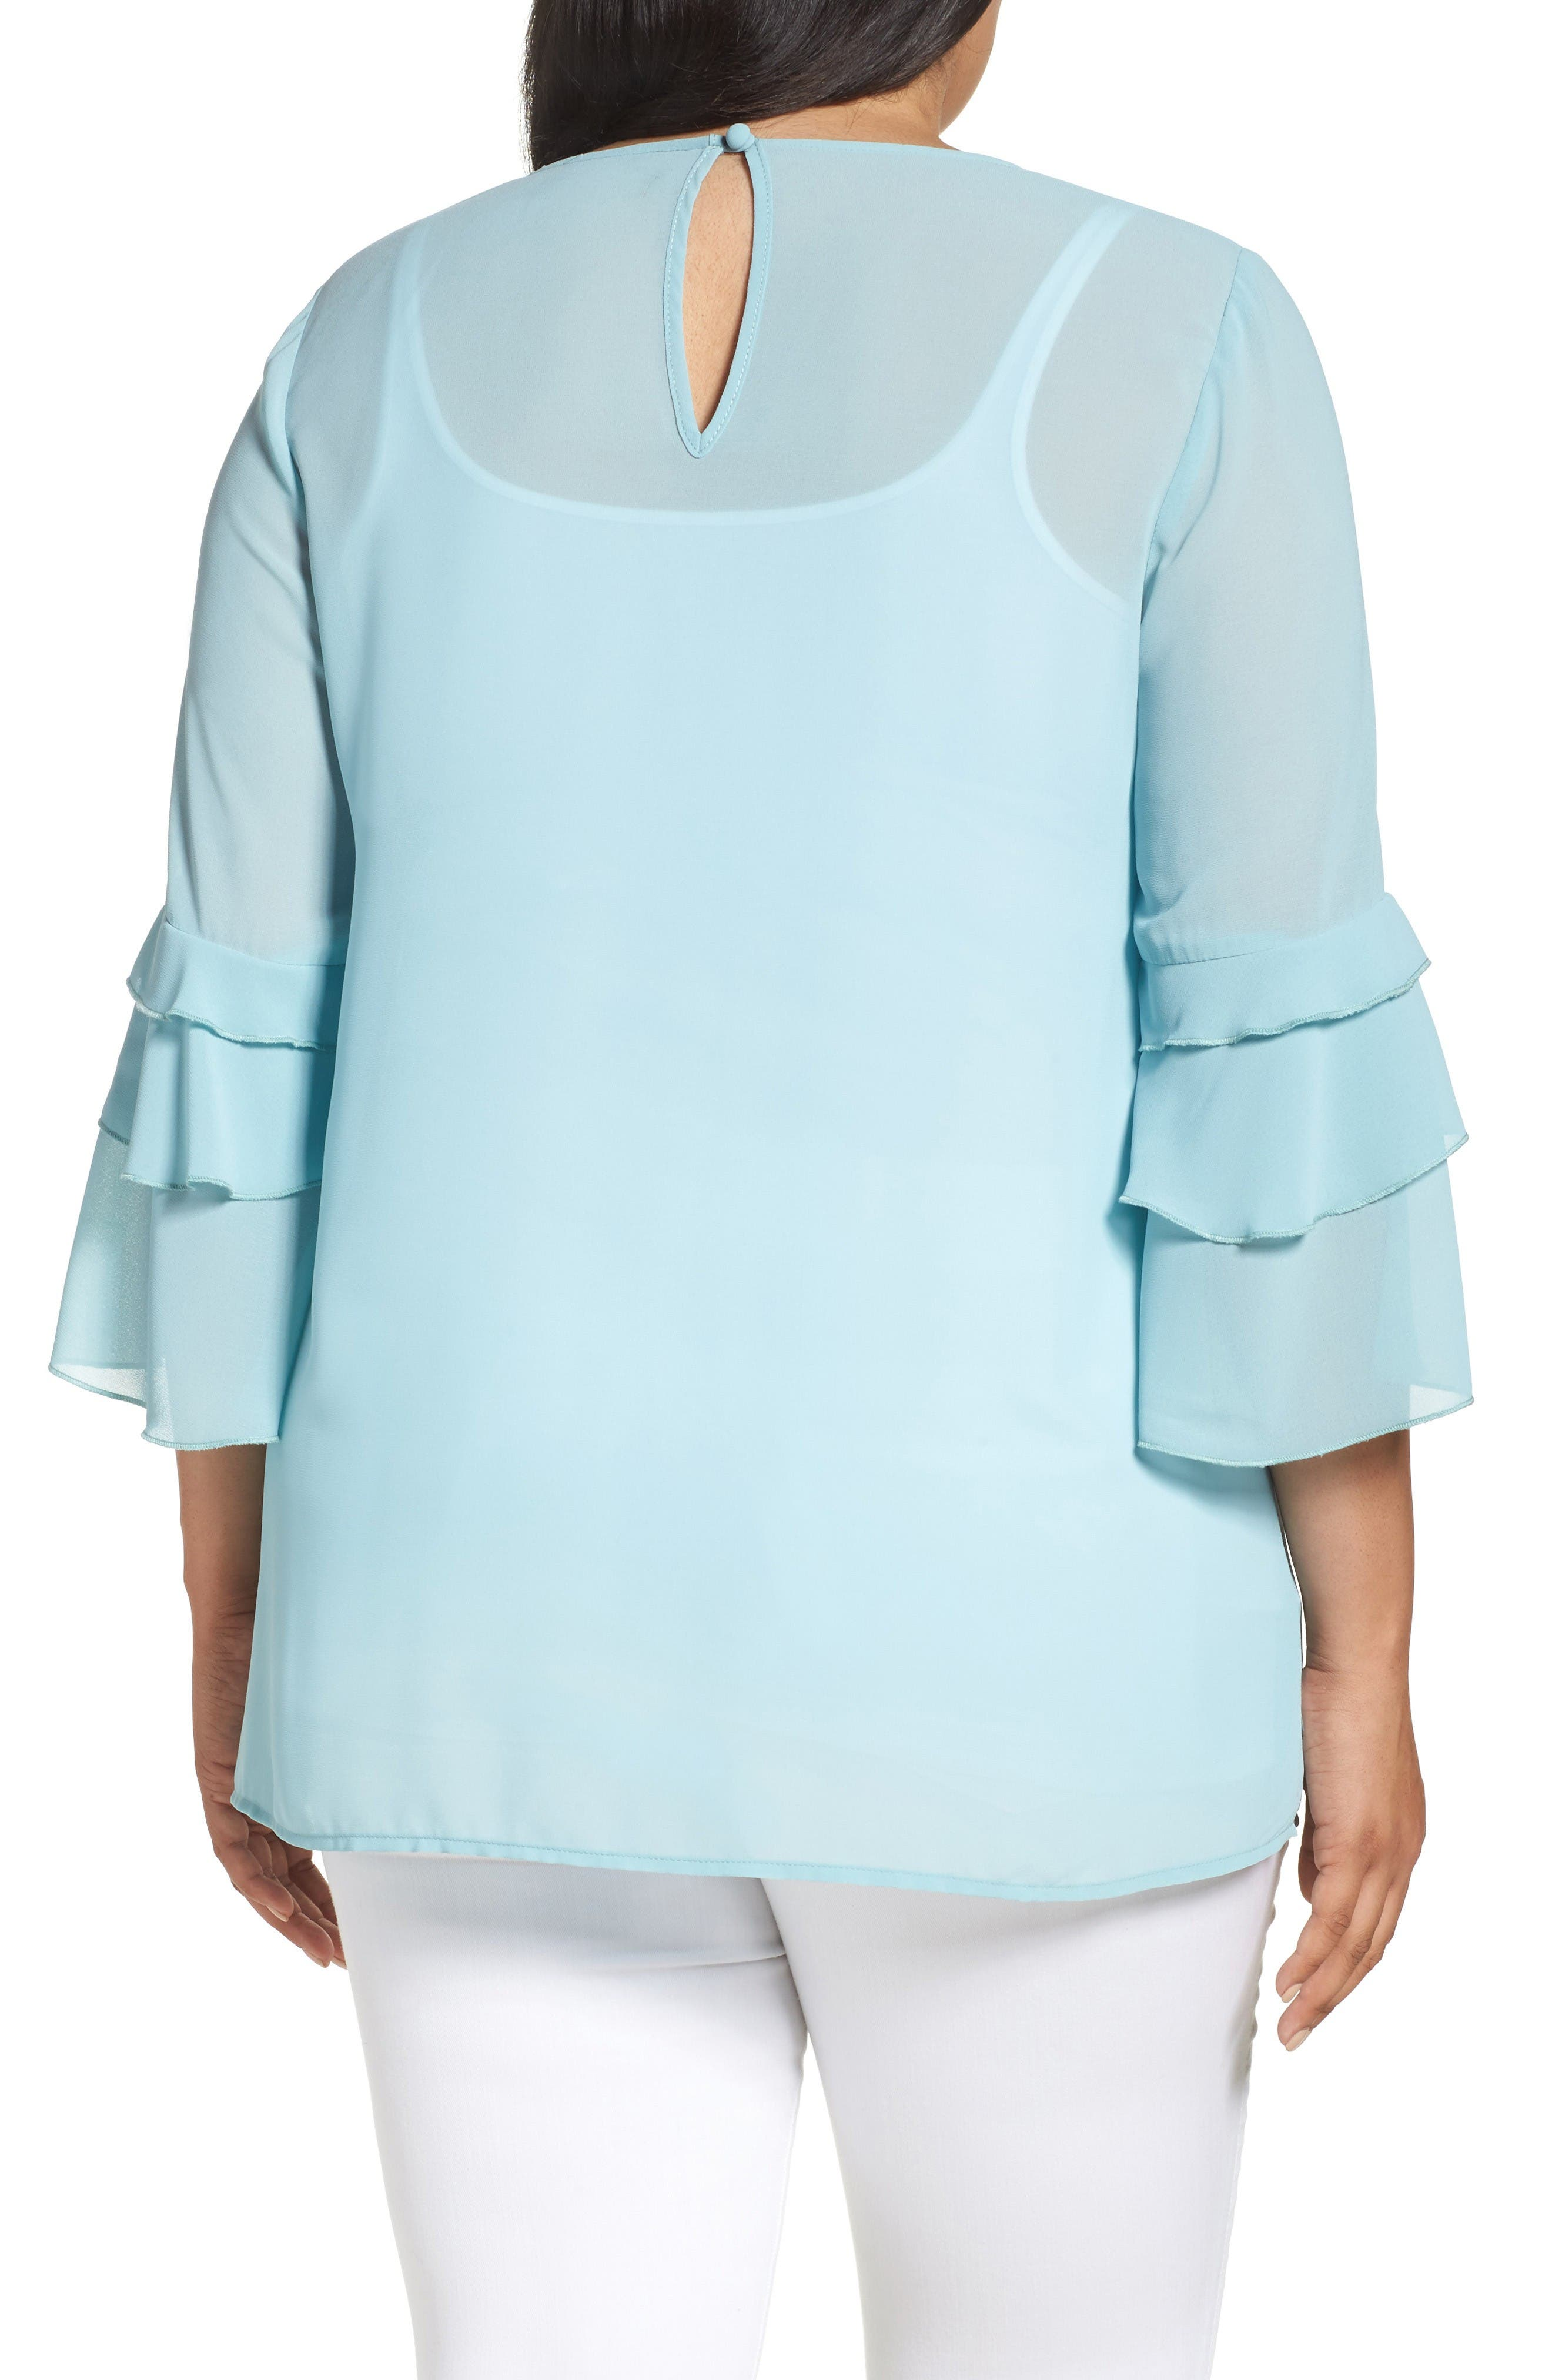 Ruffle Sleeve Blouse,                             Alternate thumbnail 2, color,                             Blue